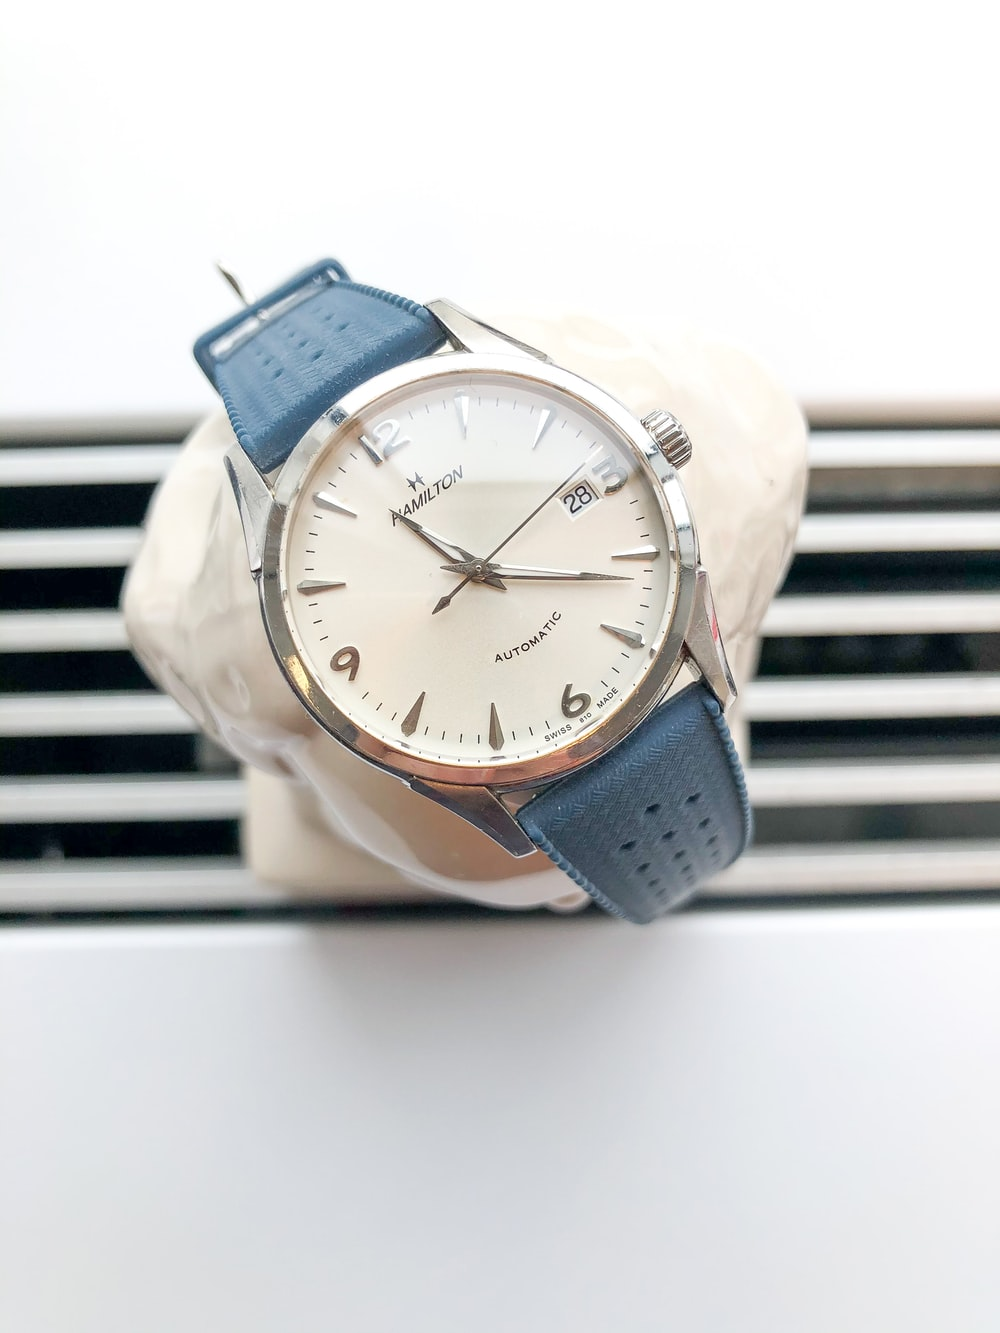 blue and silver analog watch at 10 00